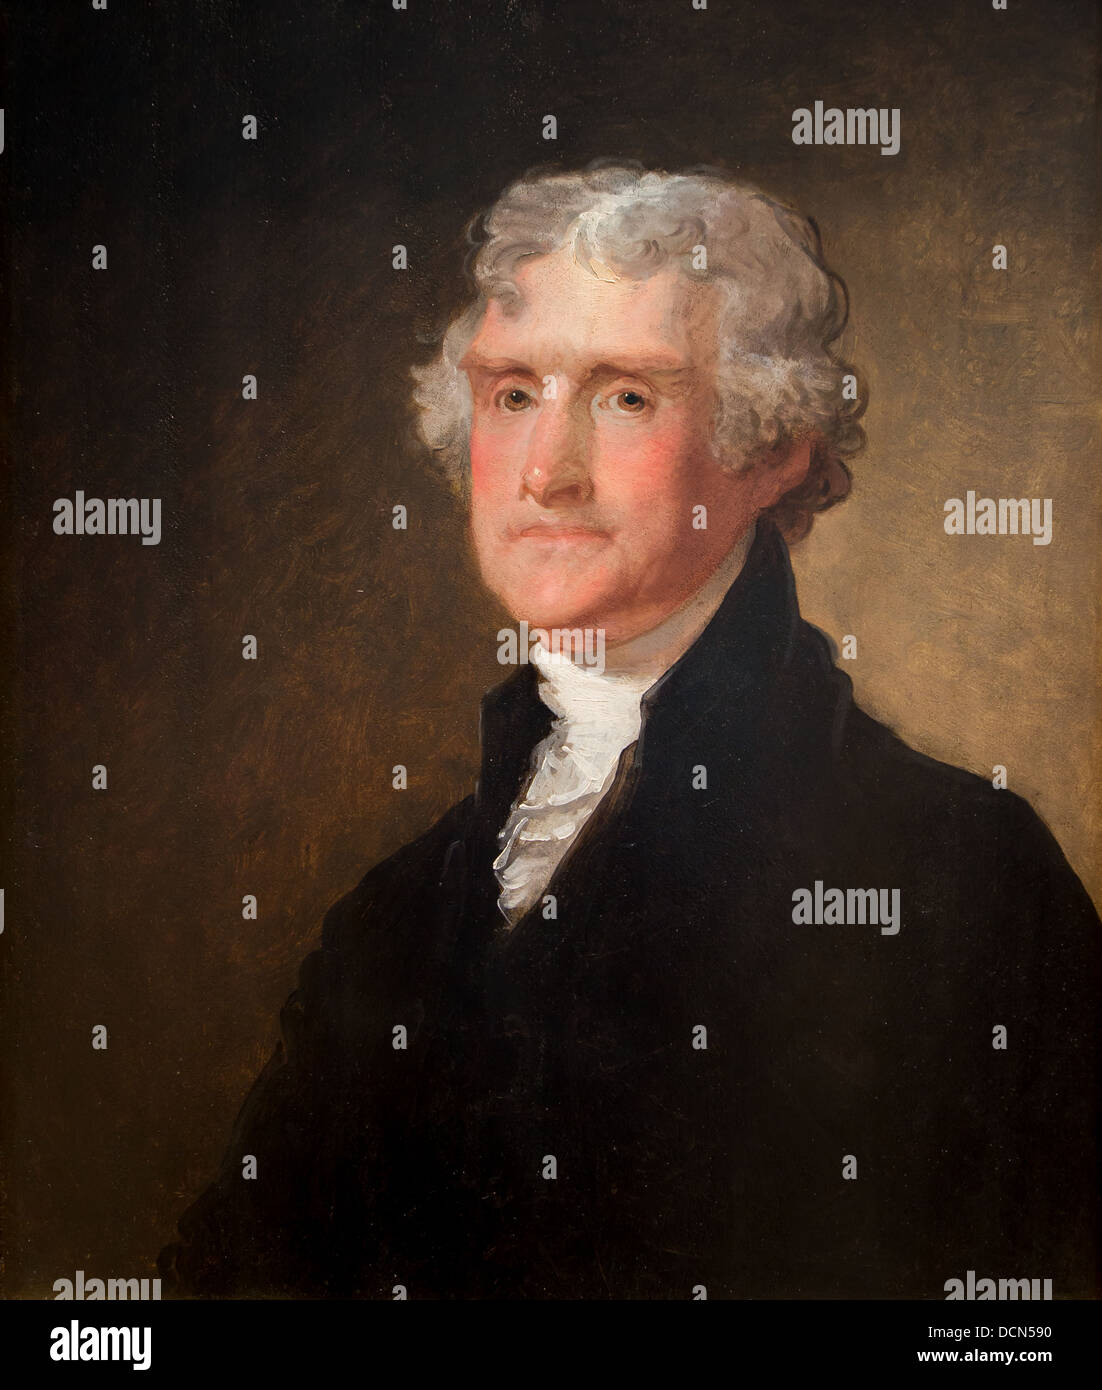 19e siècle - Thomas Jefferson - Gilbert Stuart (1821) Philippe Sauvan-Magnet / Active Museum Photo Stock